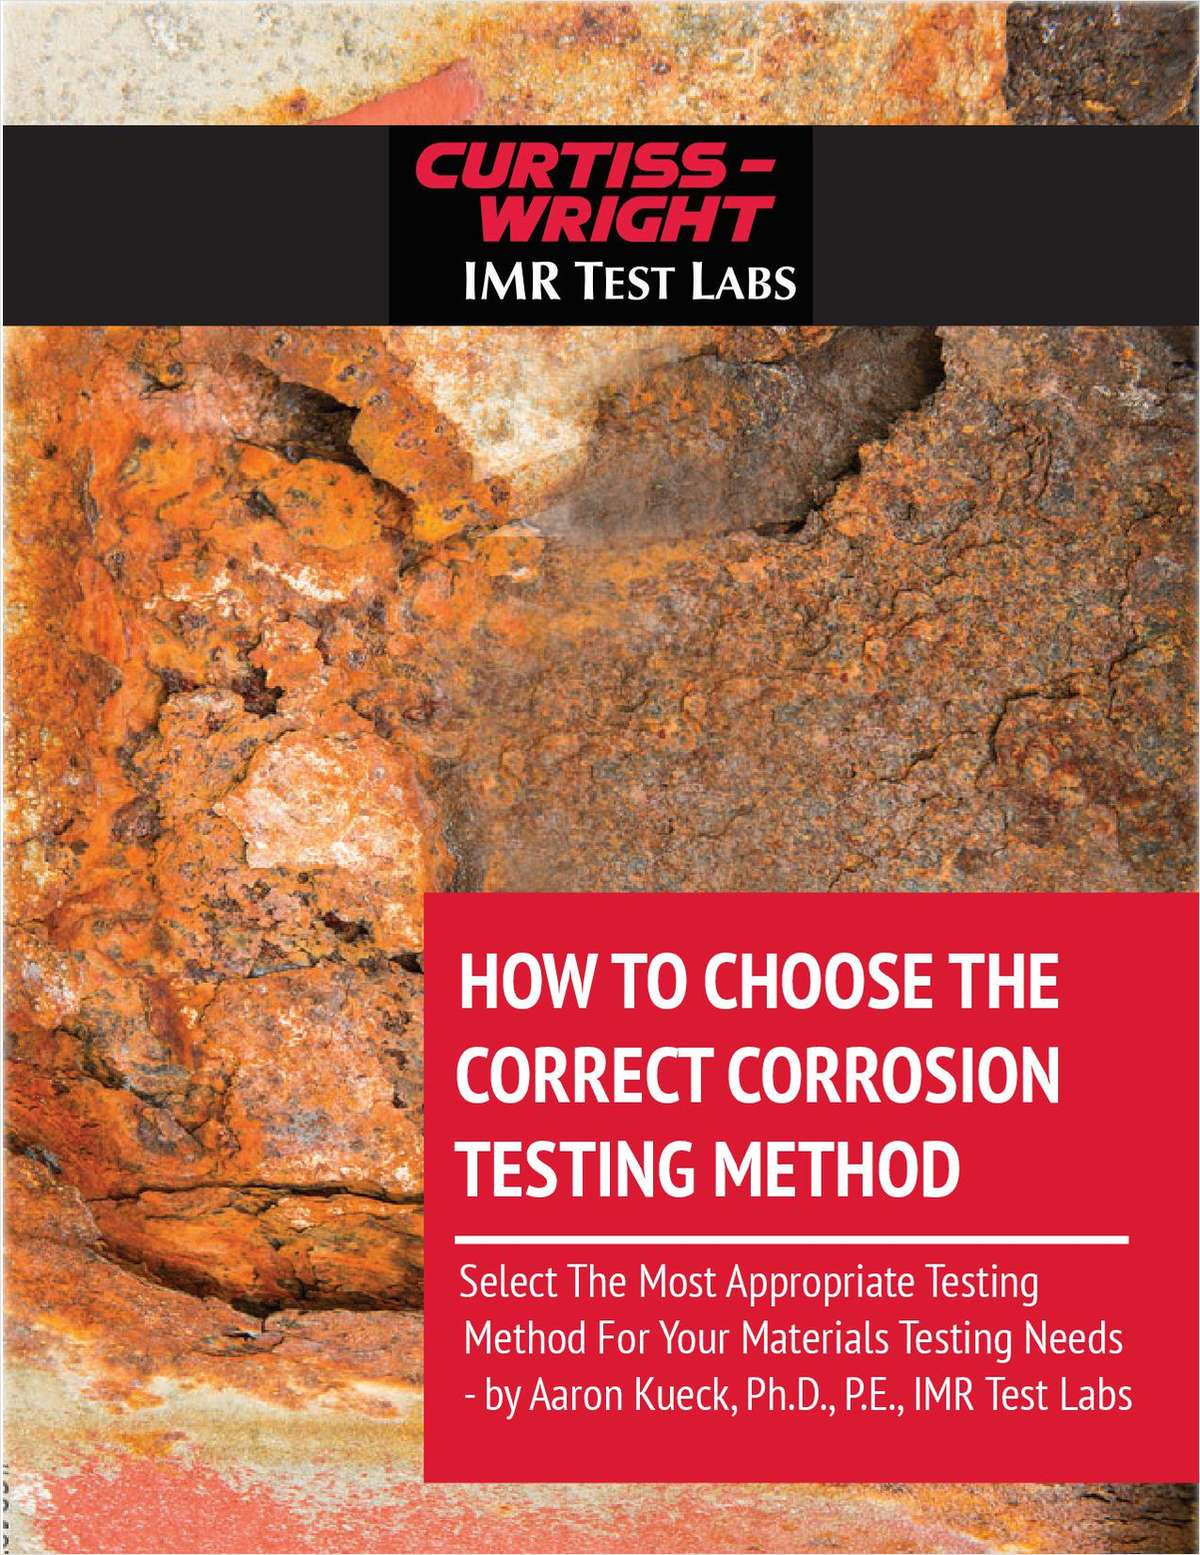 How to Choose the Correct Corrosion Testing Method